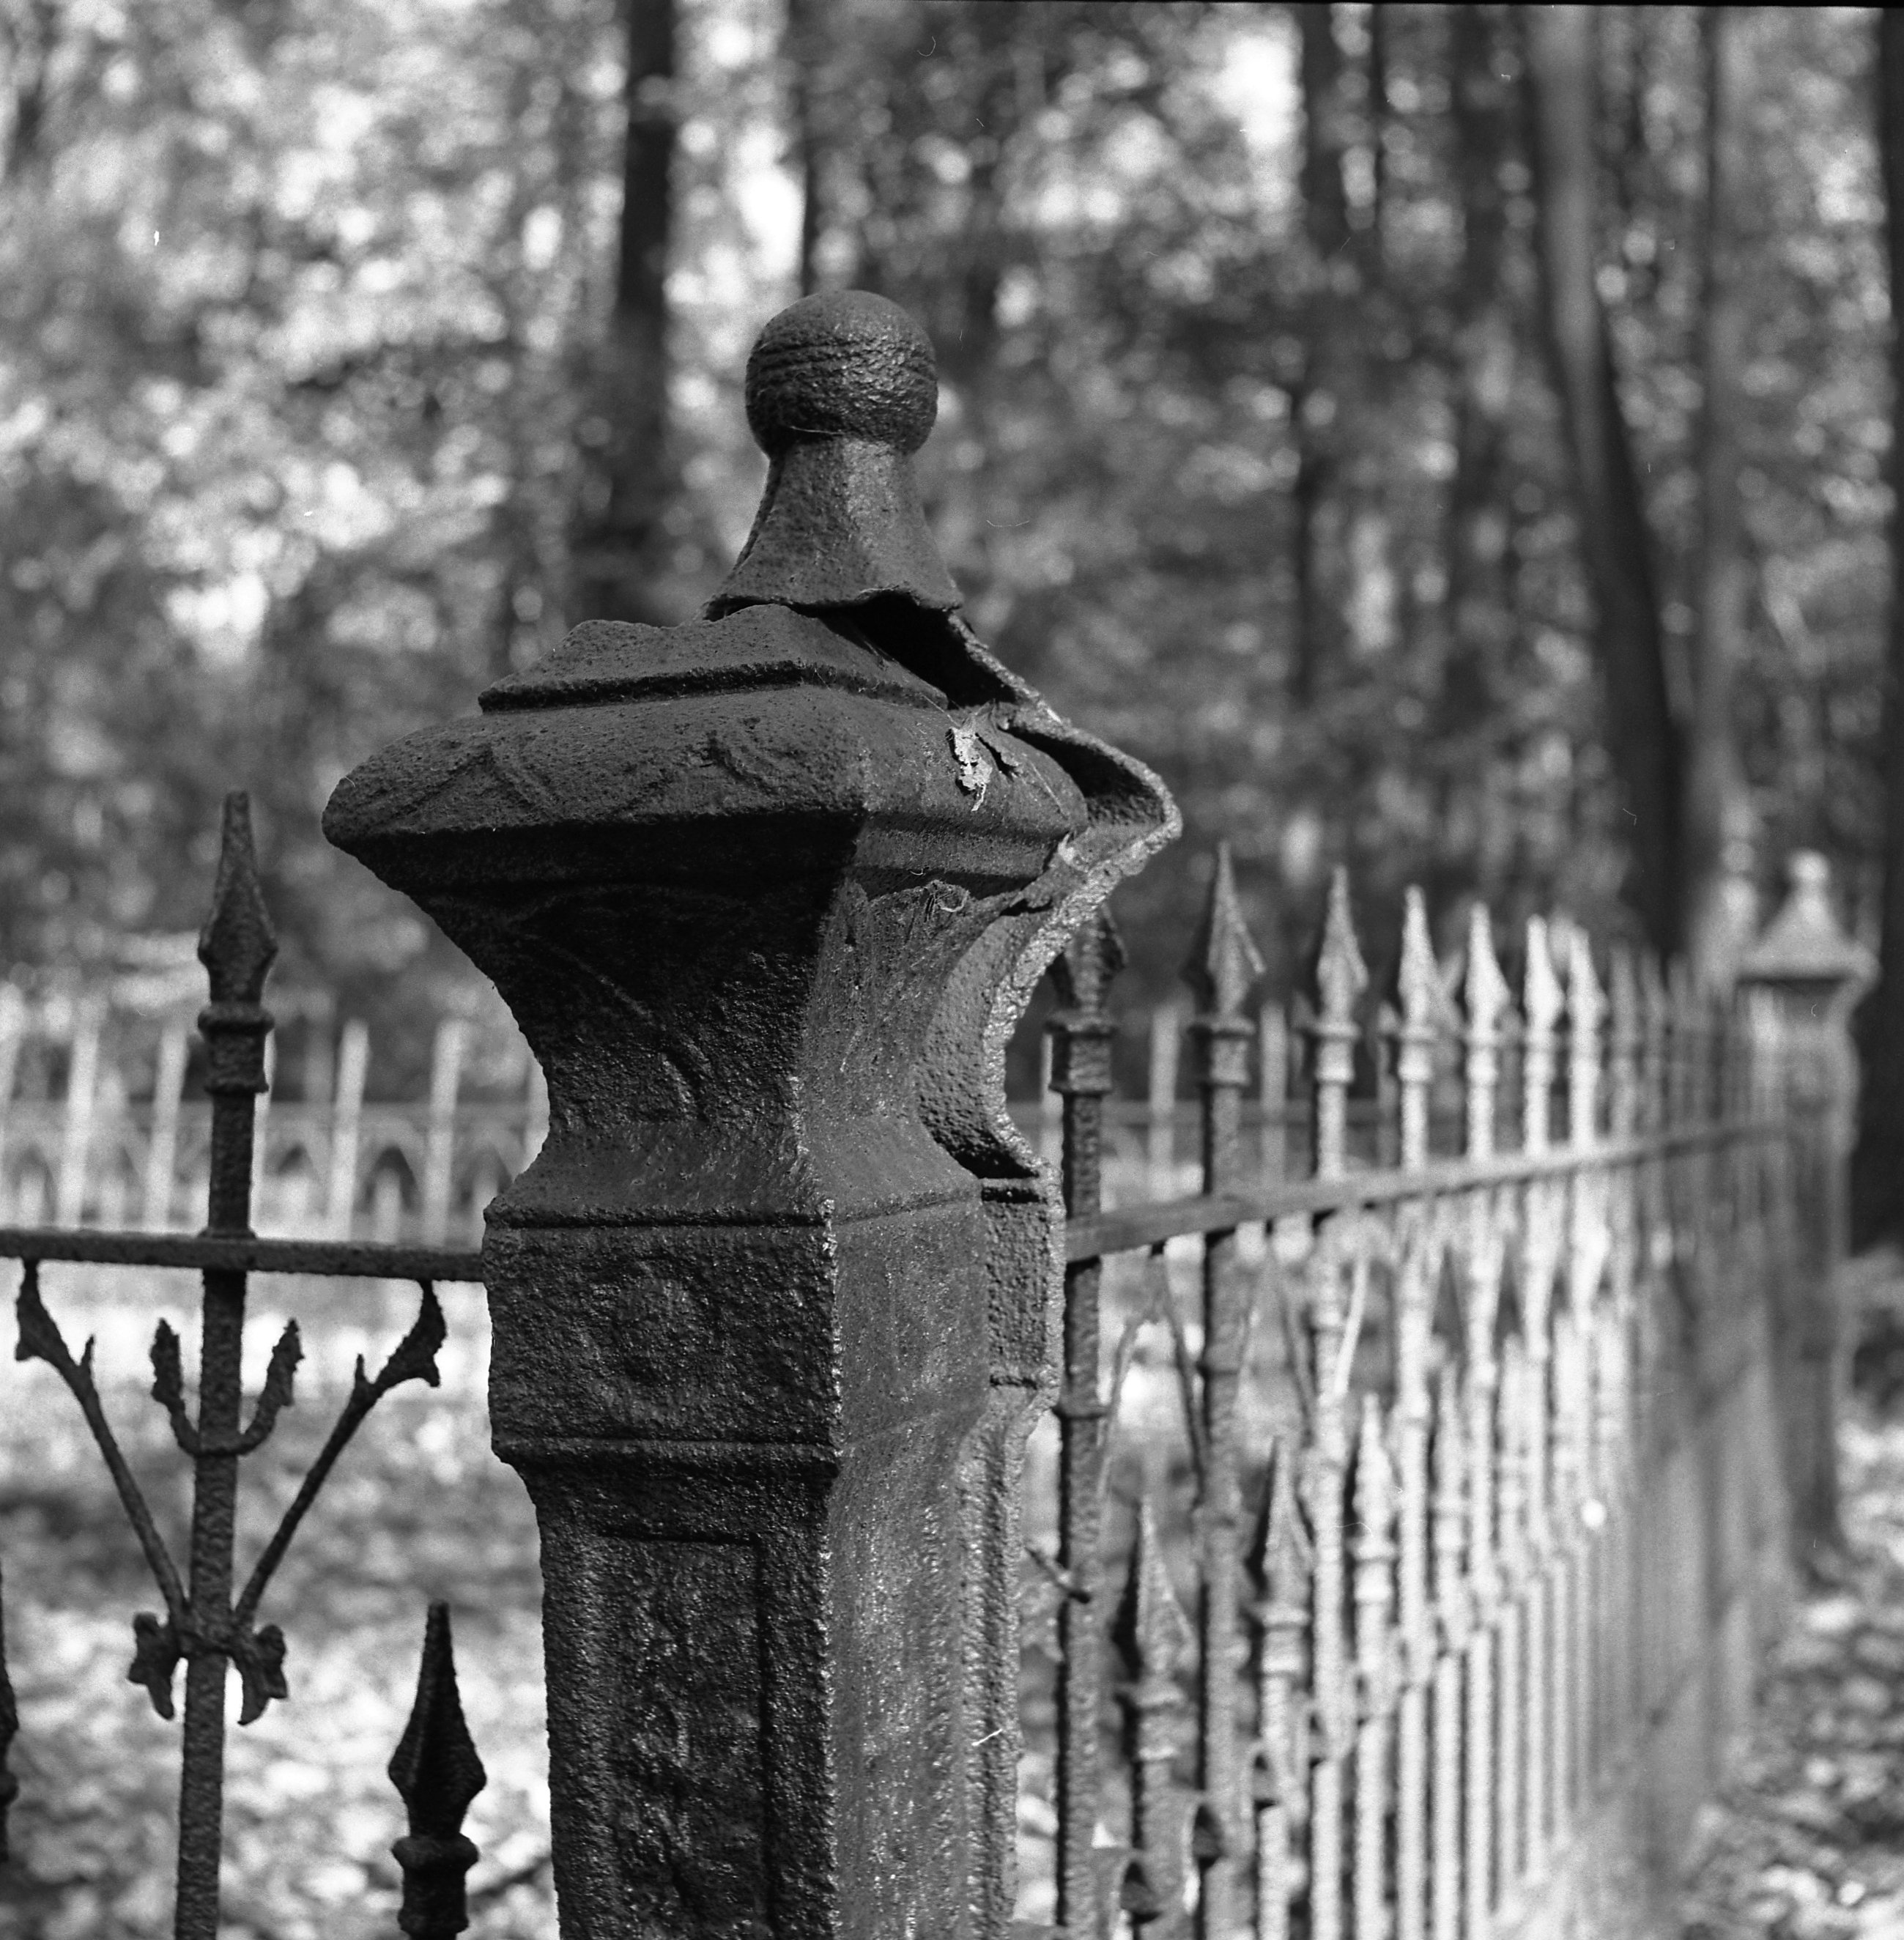 Cemetery fence black and white